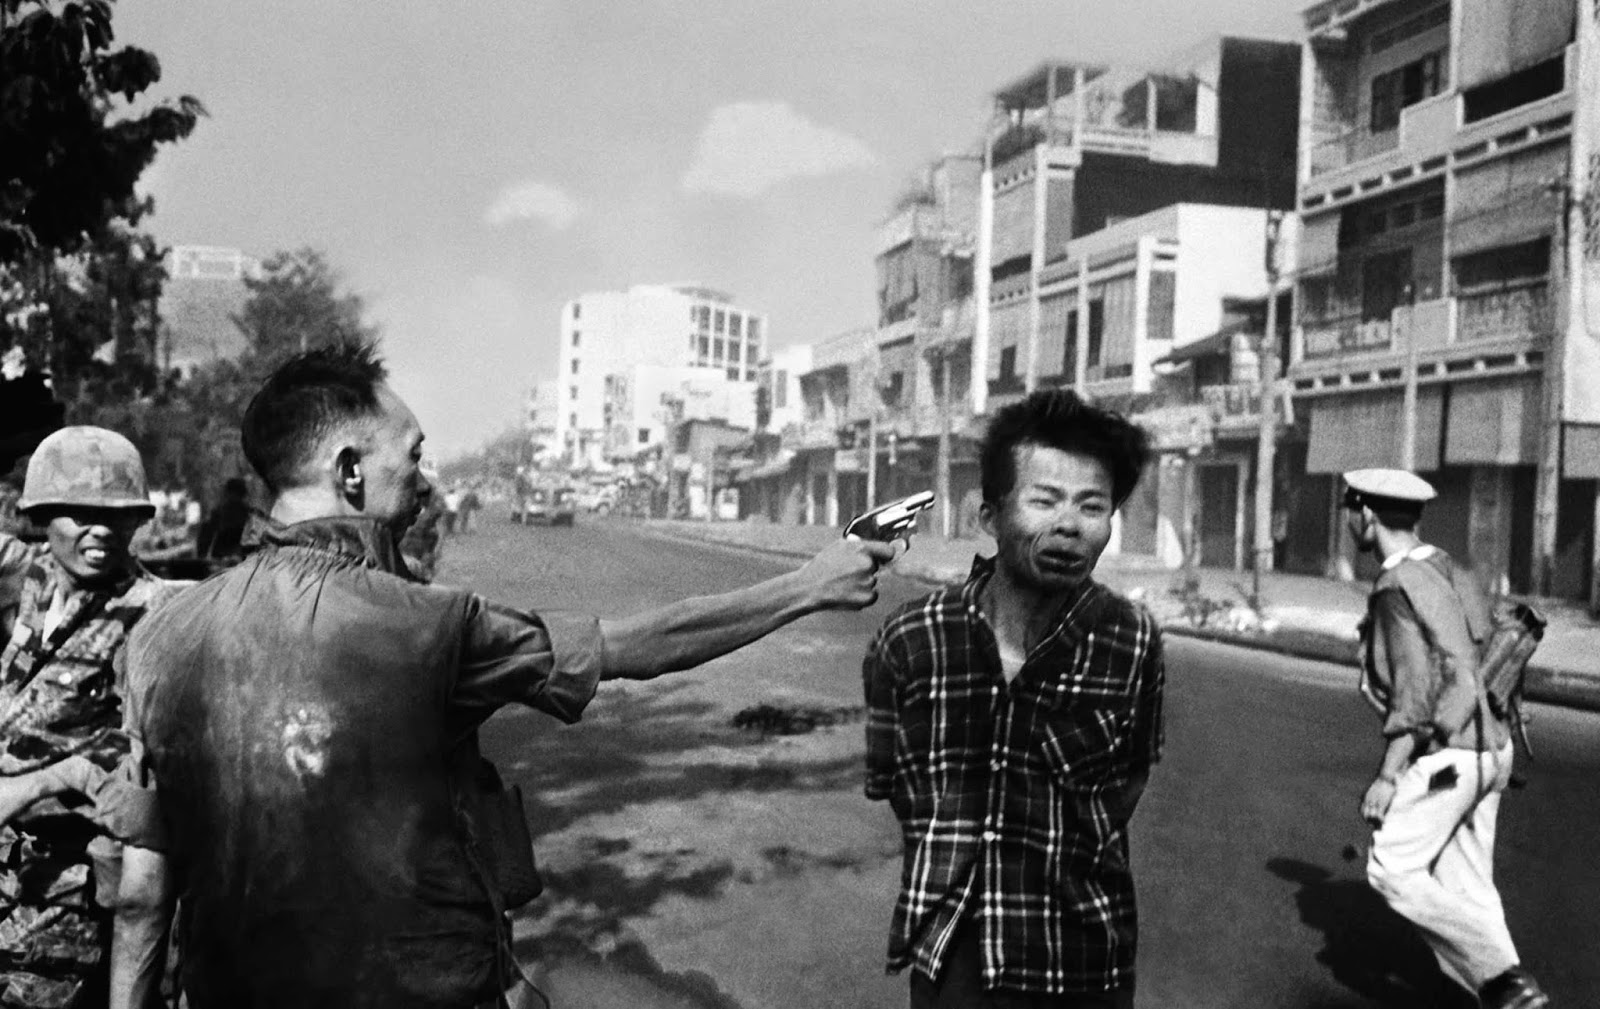 South Vietnamese Gen. Nguyen Ngoc Loan, chief of the national police, shoots Vietcong officer Nguyen Van Lem, also known as Bay Lop, on a Saigon street on Feb. 1, 1968.